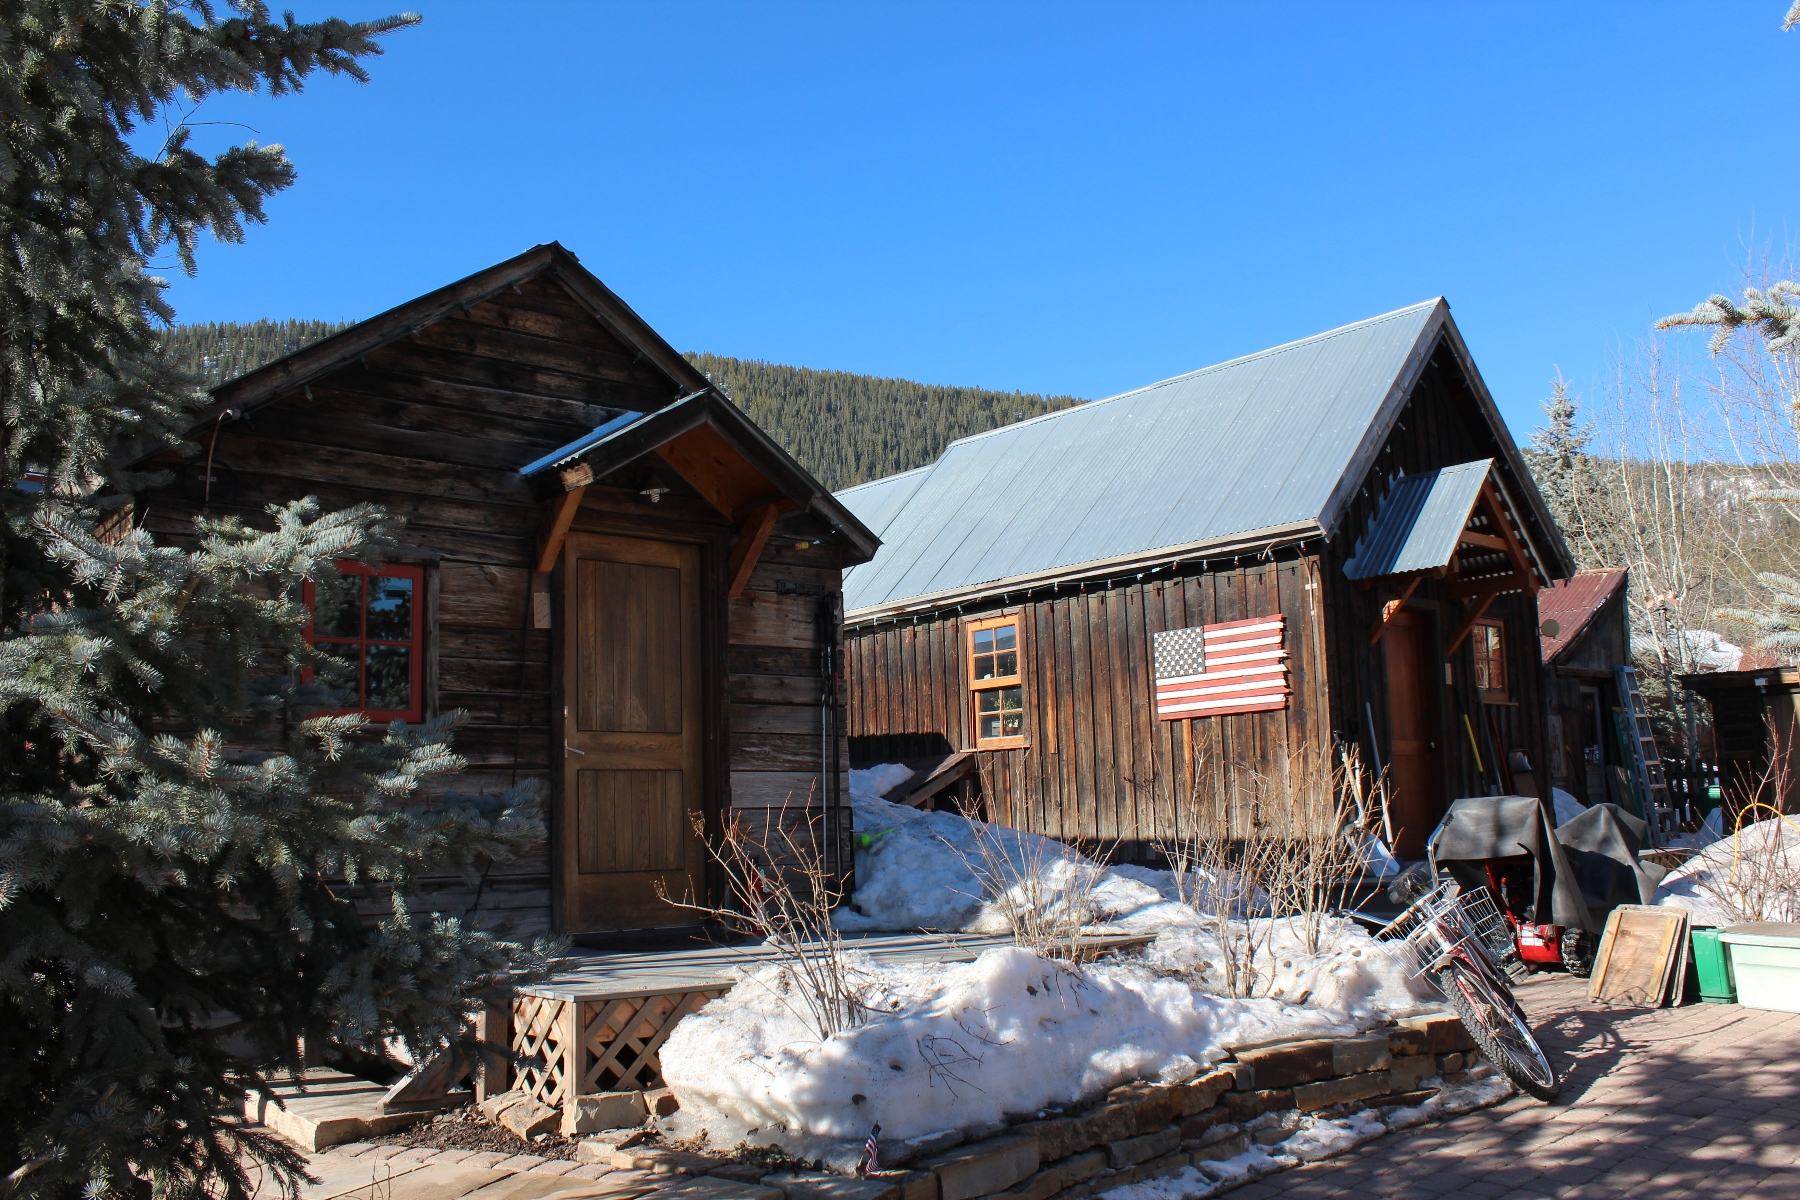 Single Family Home for Sale at Rare Investment Opportunity 330 Whiterock Avenue Crested Butte, Colorado, 81224 United States